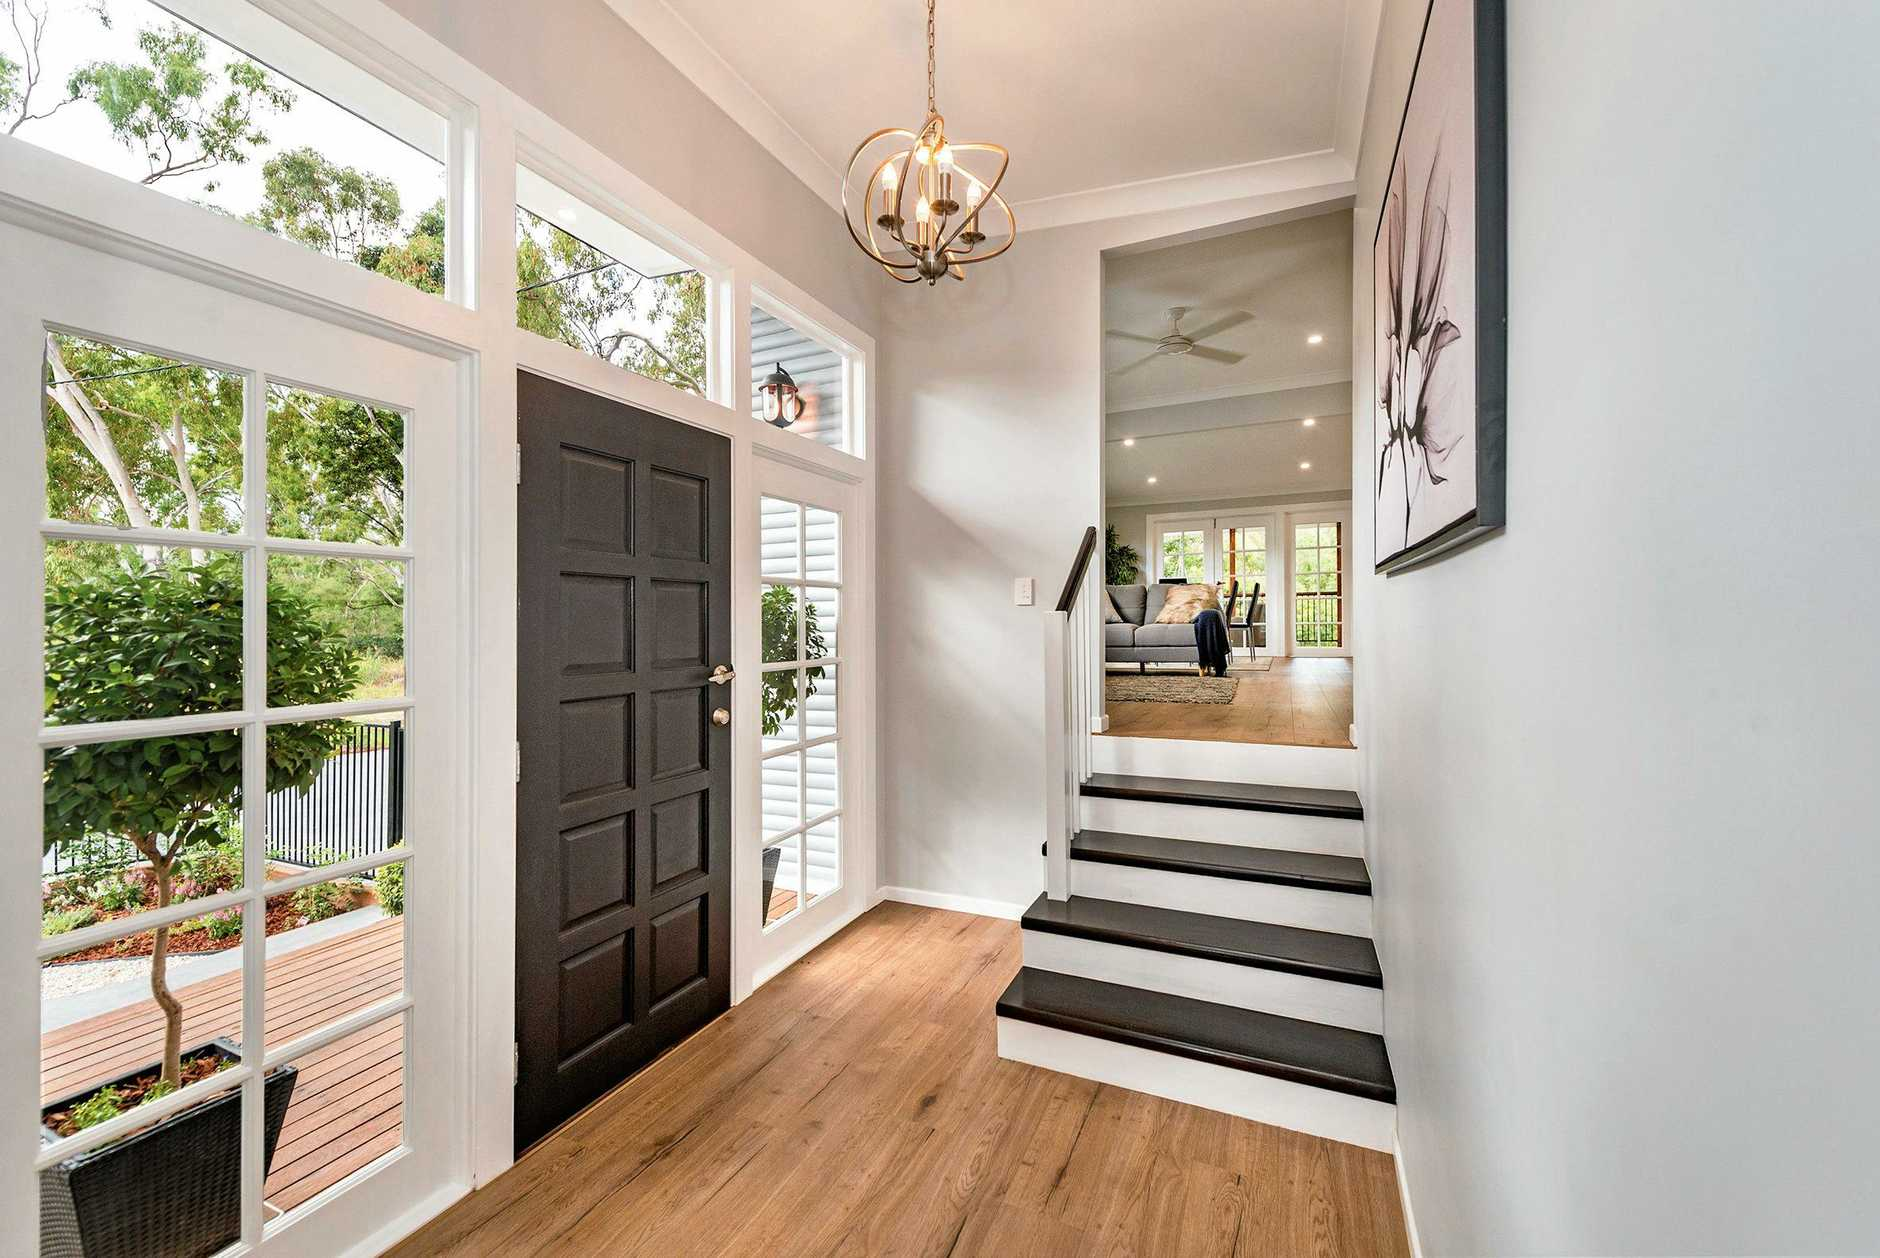 The stunning entry breathes life into the recently renovated home, bathing the space in natural light.